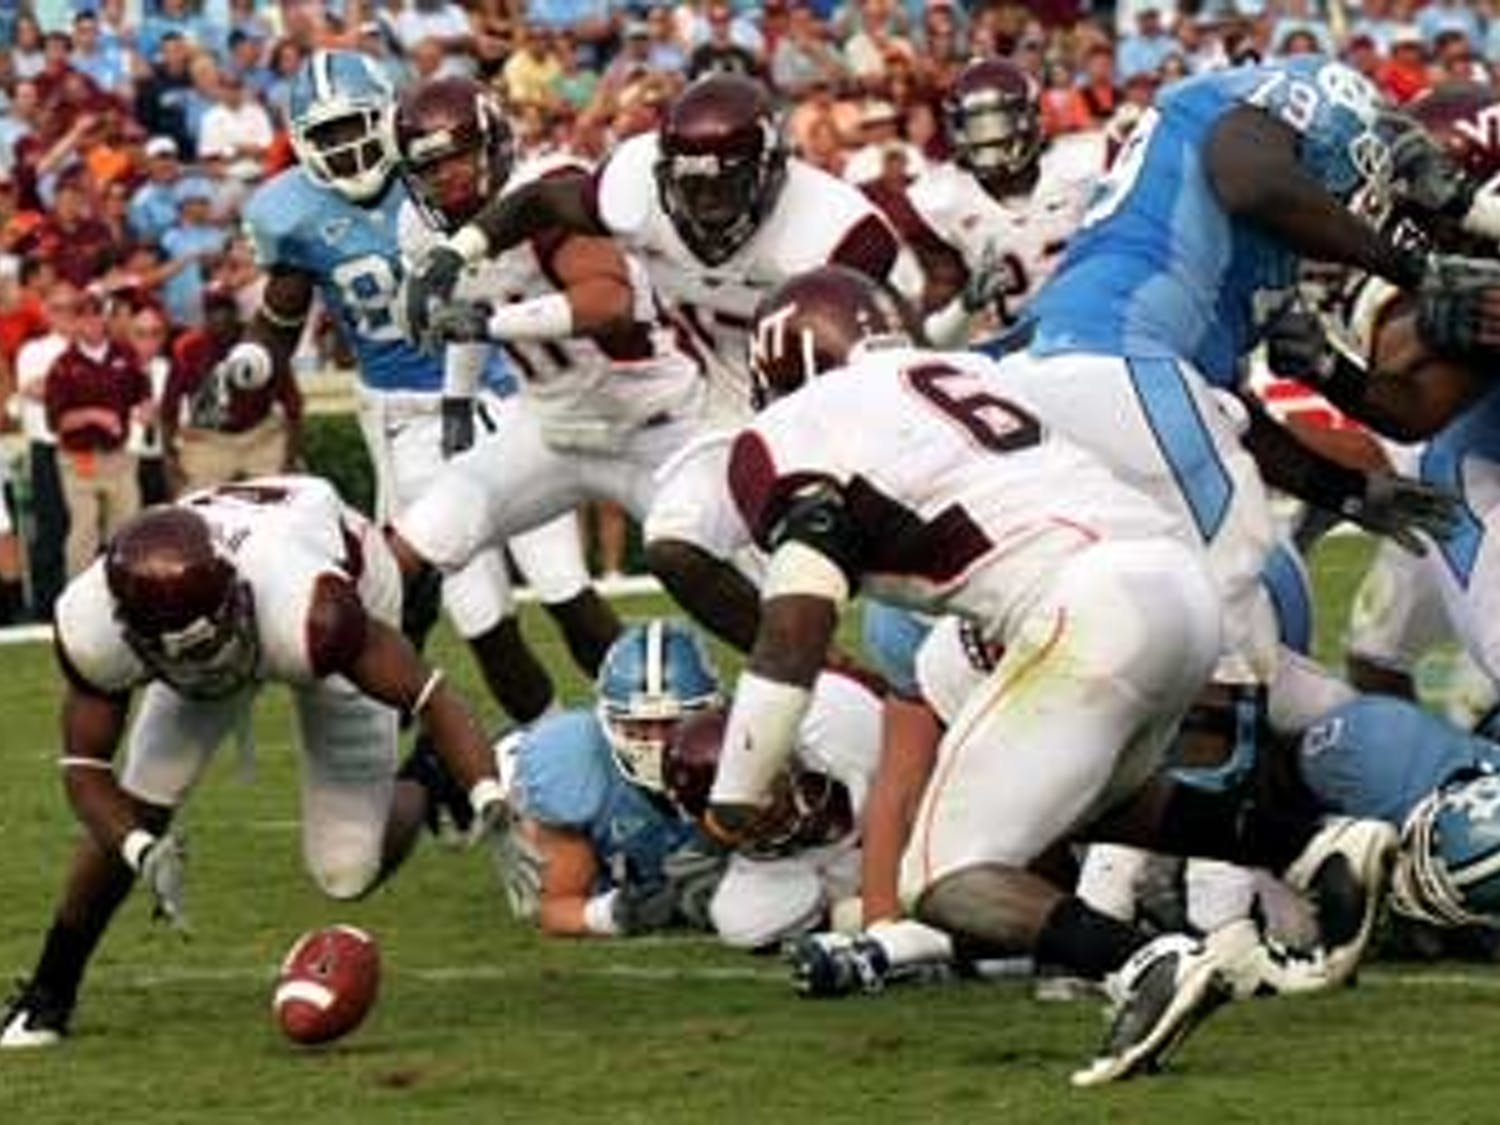 """Though Virginia Tech?s defense struggled early"""" the Hokies? unit shut down the Tar Heels when it mattered most.VT forced two North Carolina fumbles both of which Virginia Tech recovered. UNC now is 0-5 against the Hokies since the school joined the ACC in the 2004 expansion."""